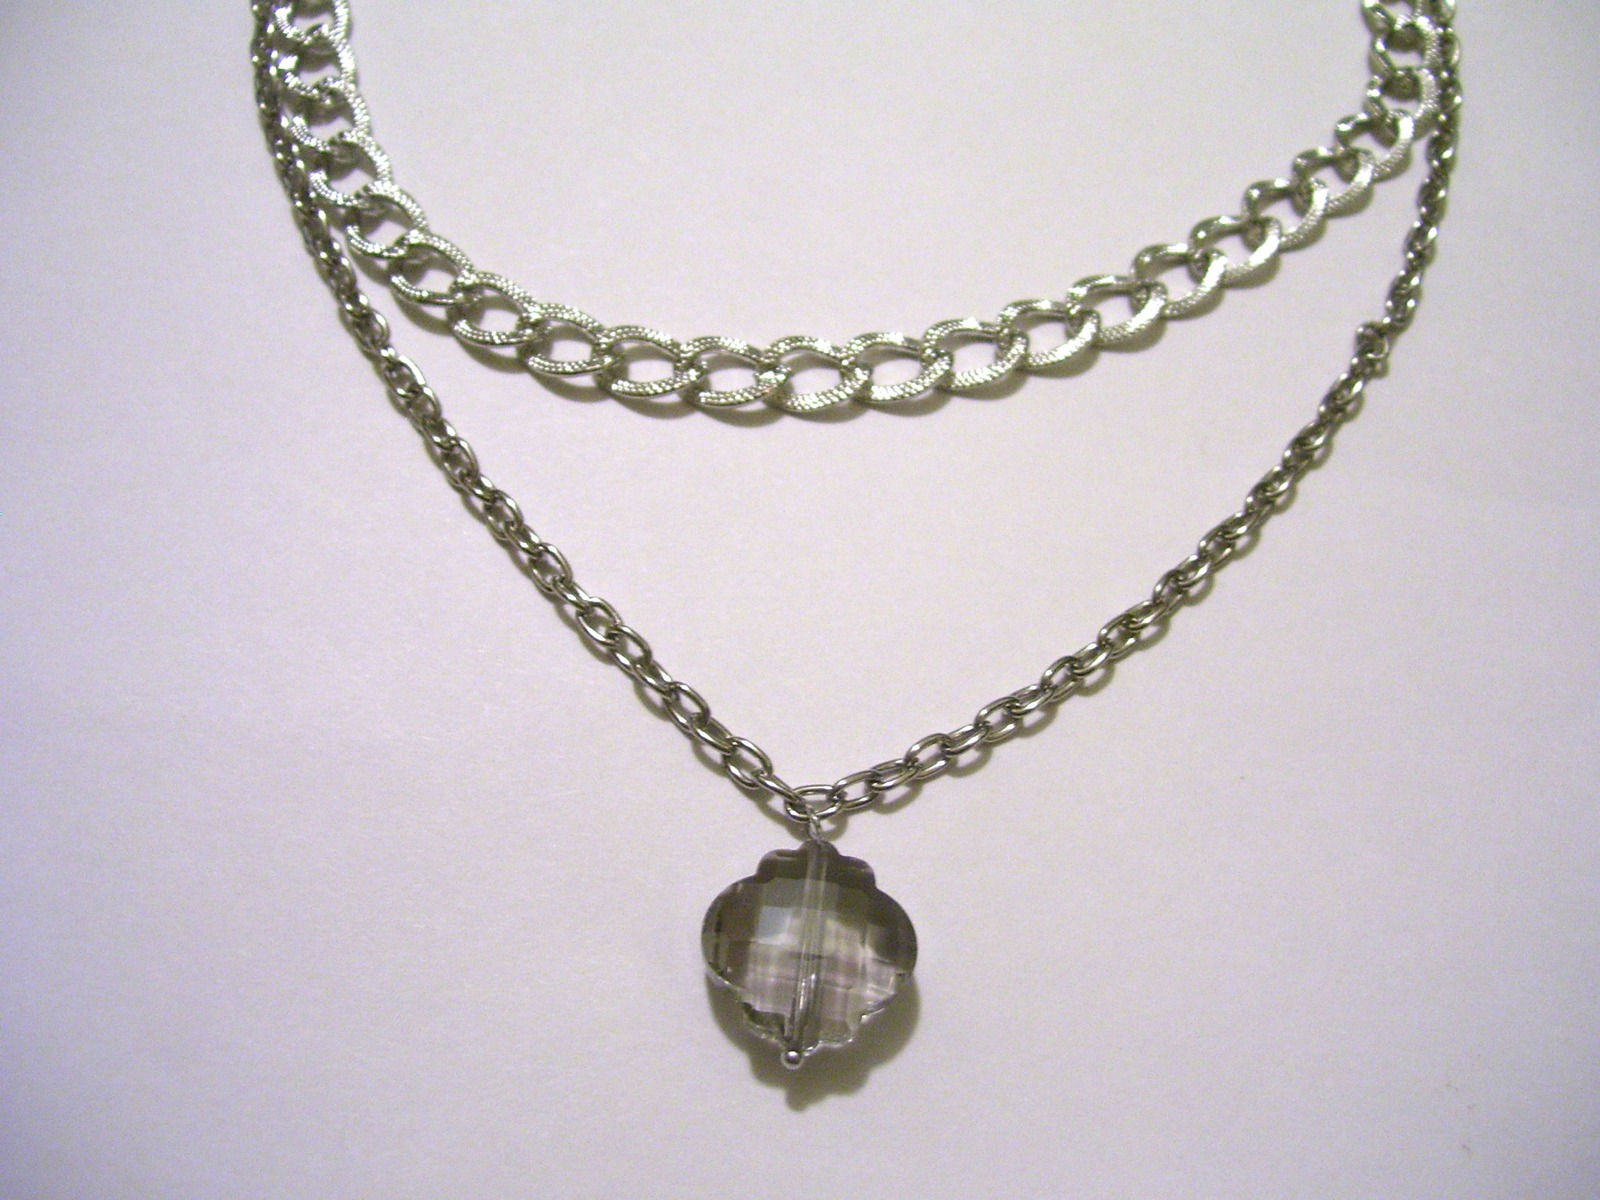 Smokey Gray charme on a double chain Silver Necklace